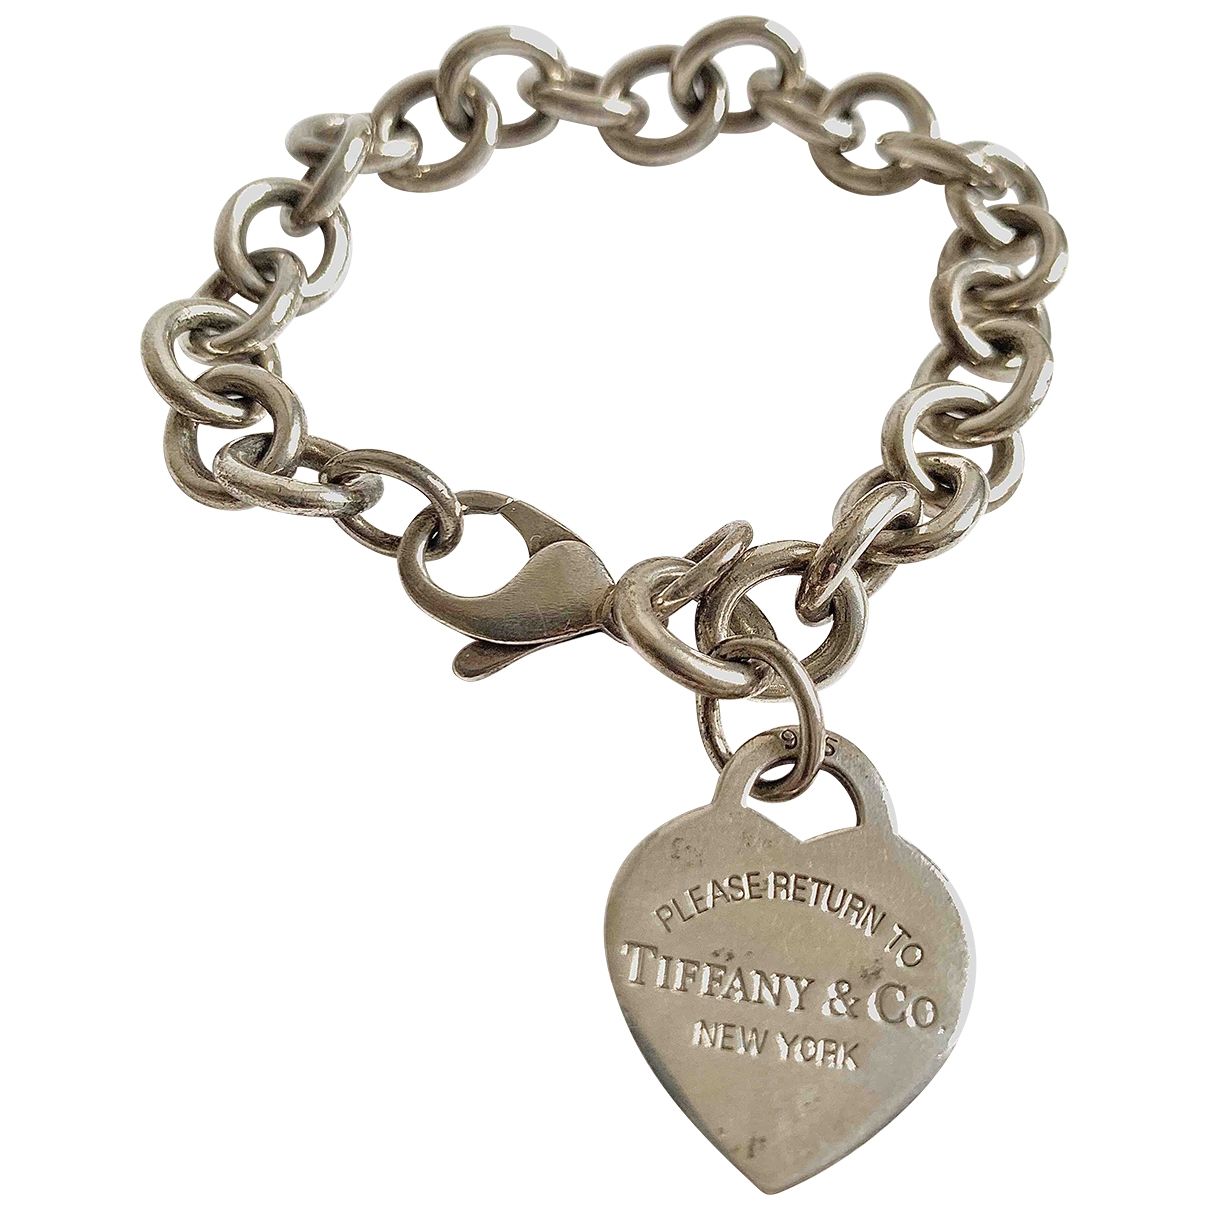 Tiffany & Co - Bracelet Return to Tiffany pour femme en argent - argente